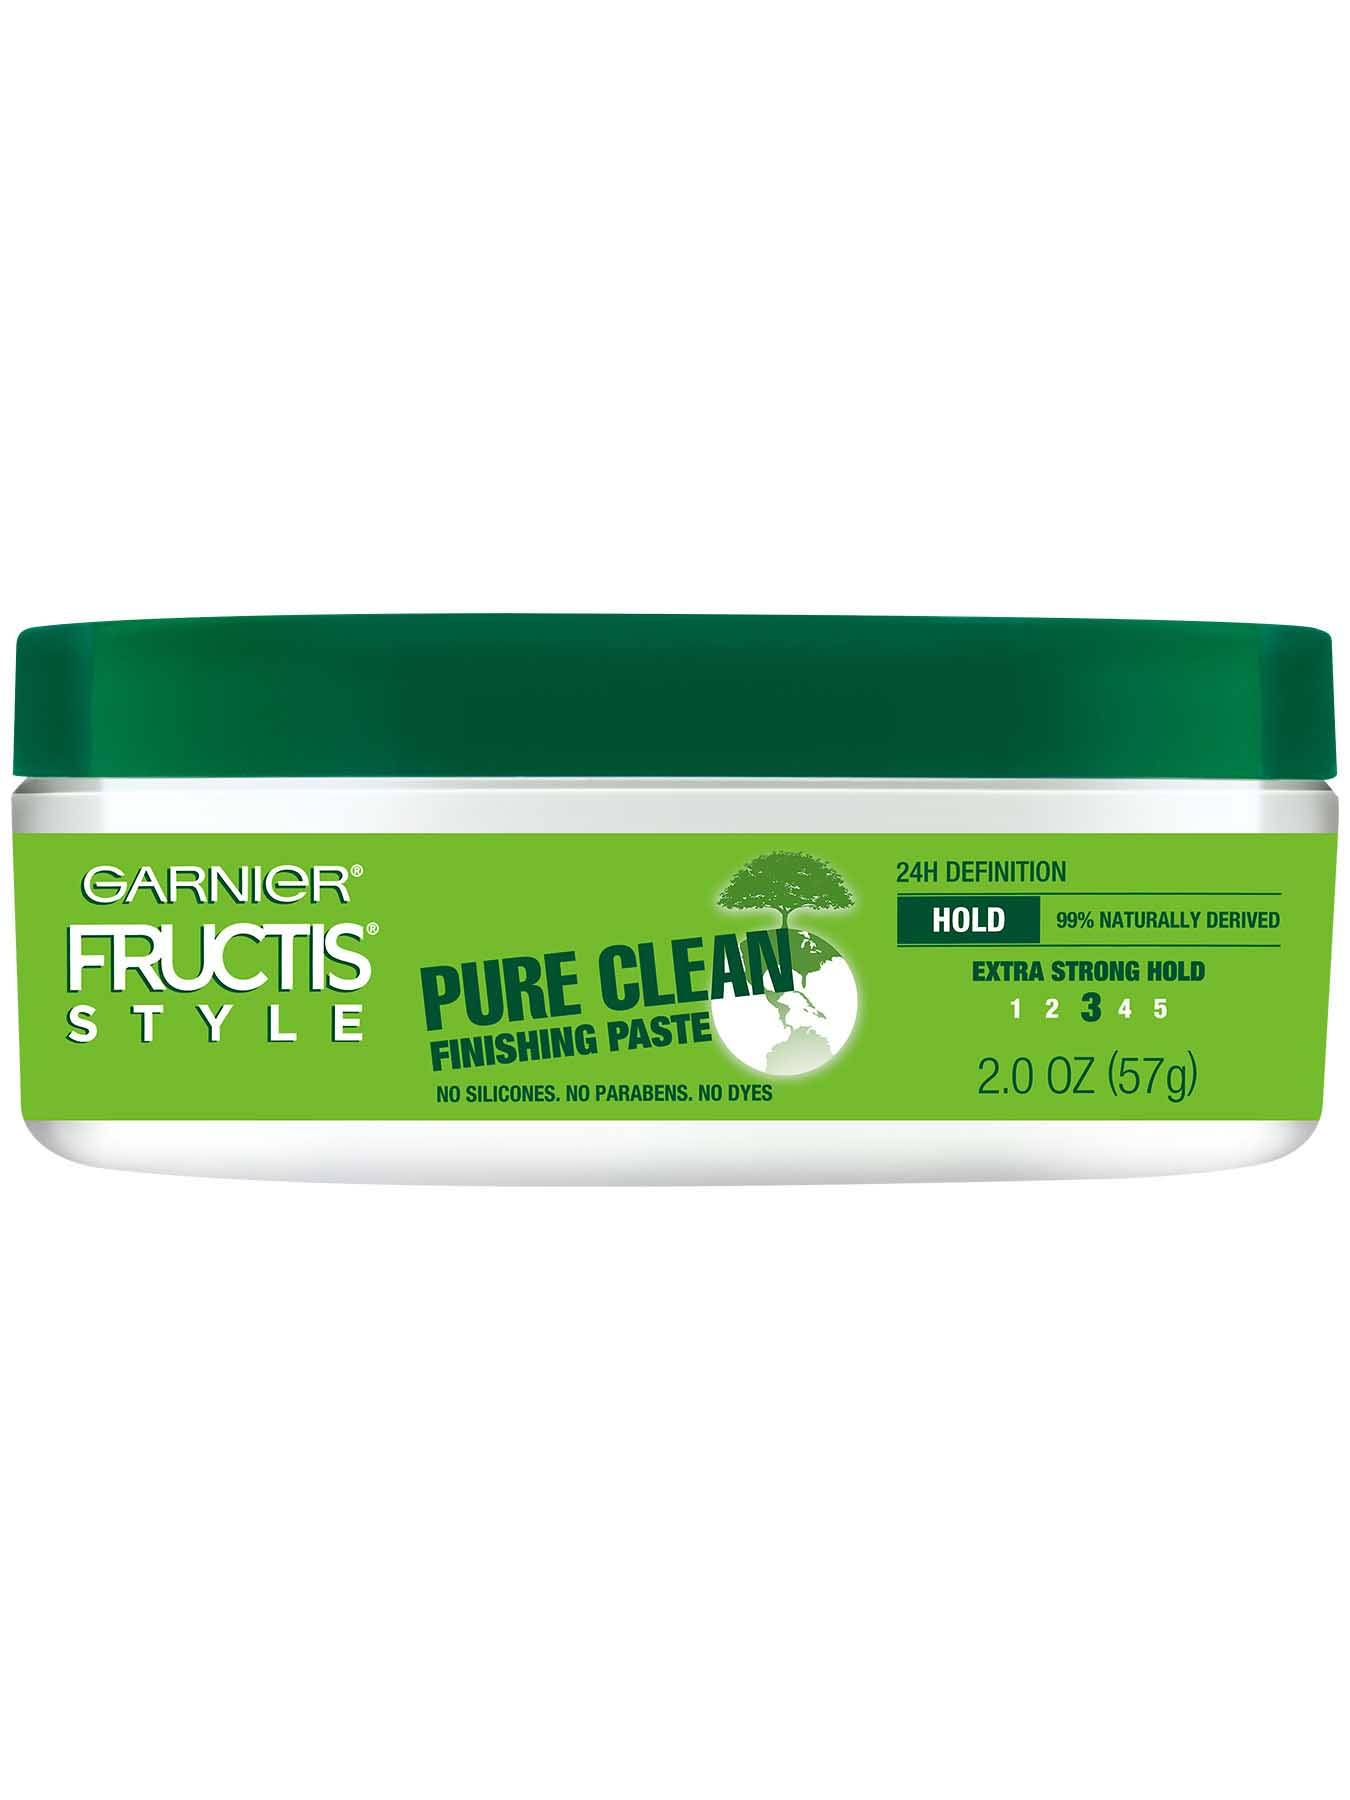 Front view of Pure Clean Finishing Paste.